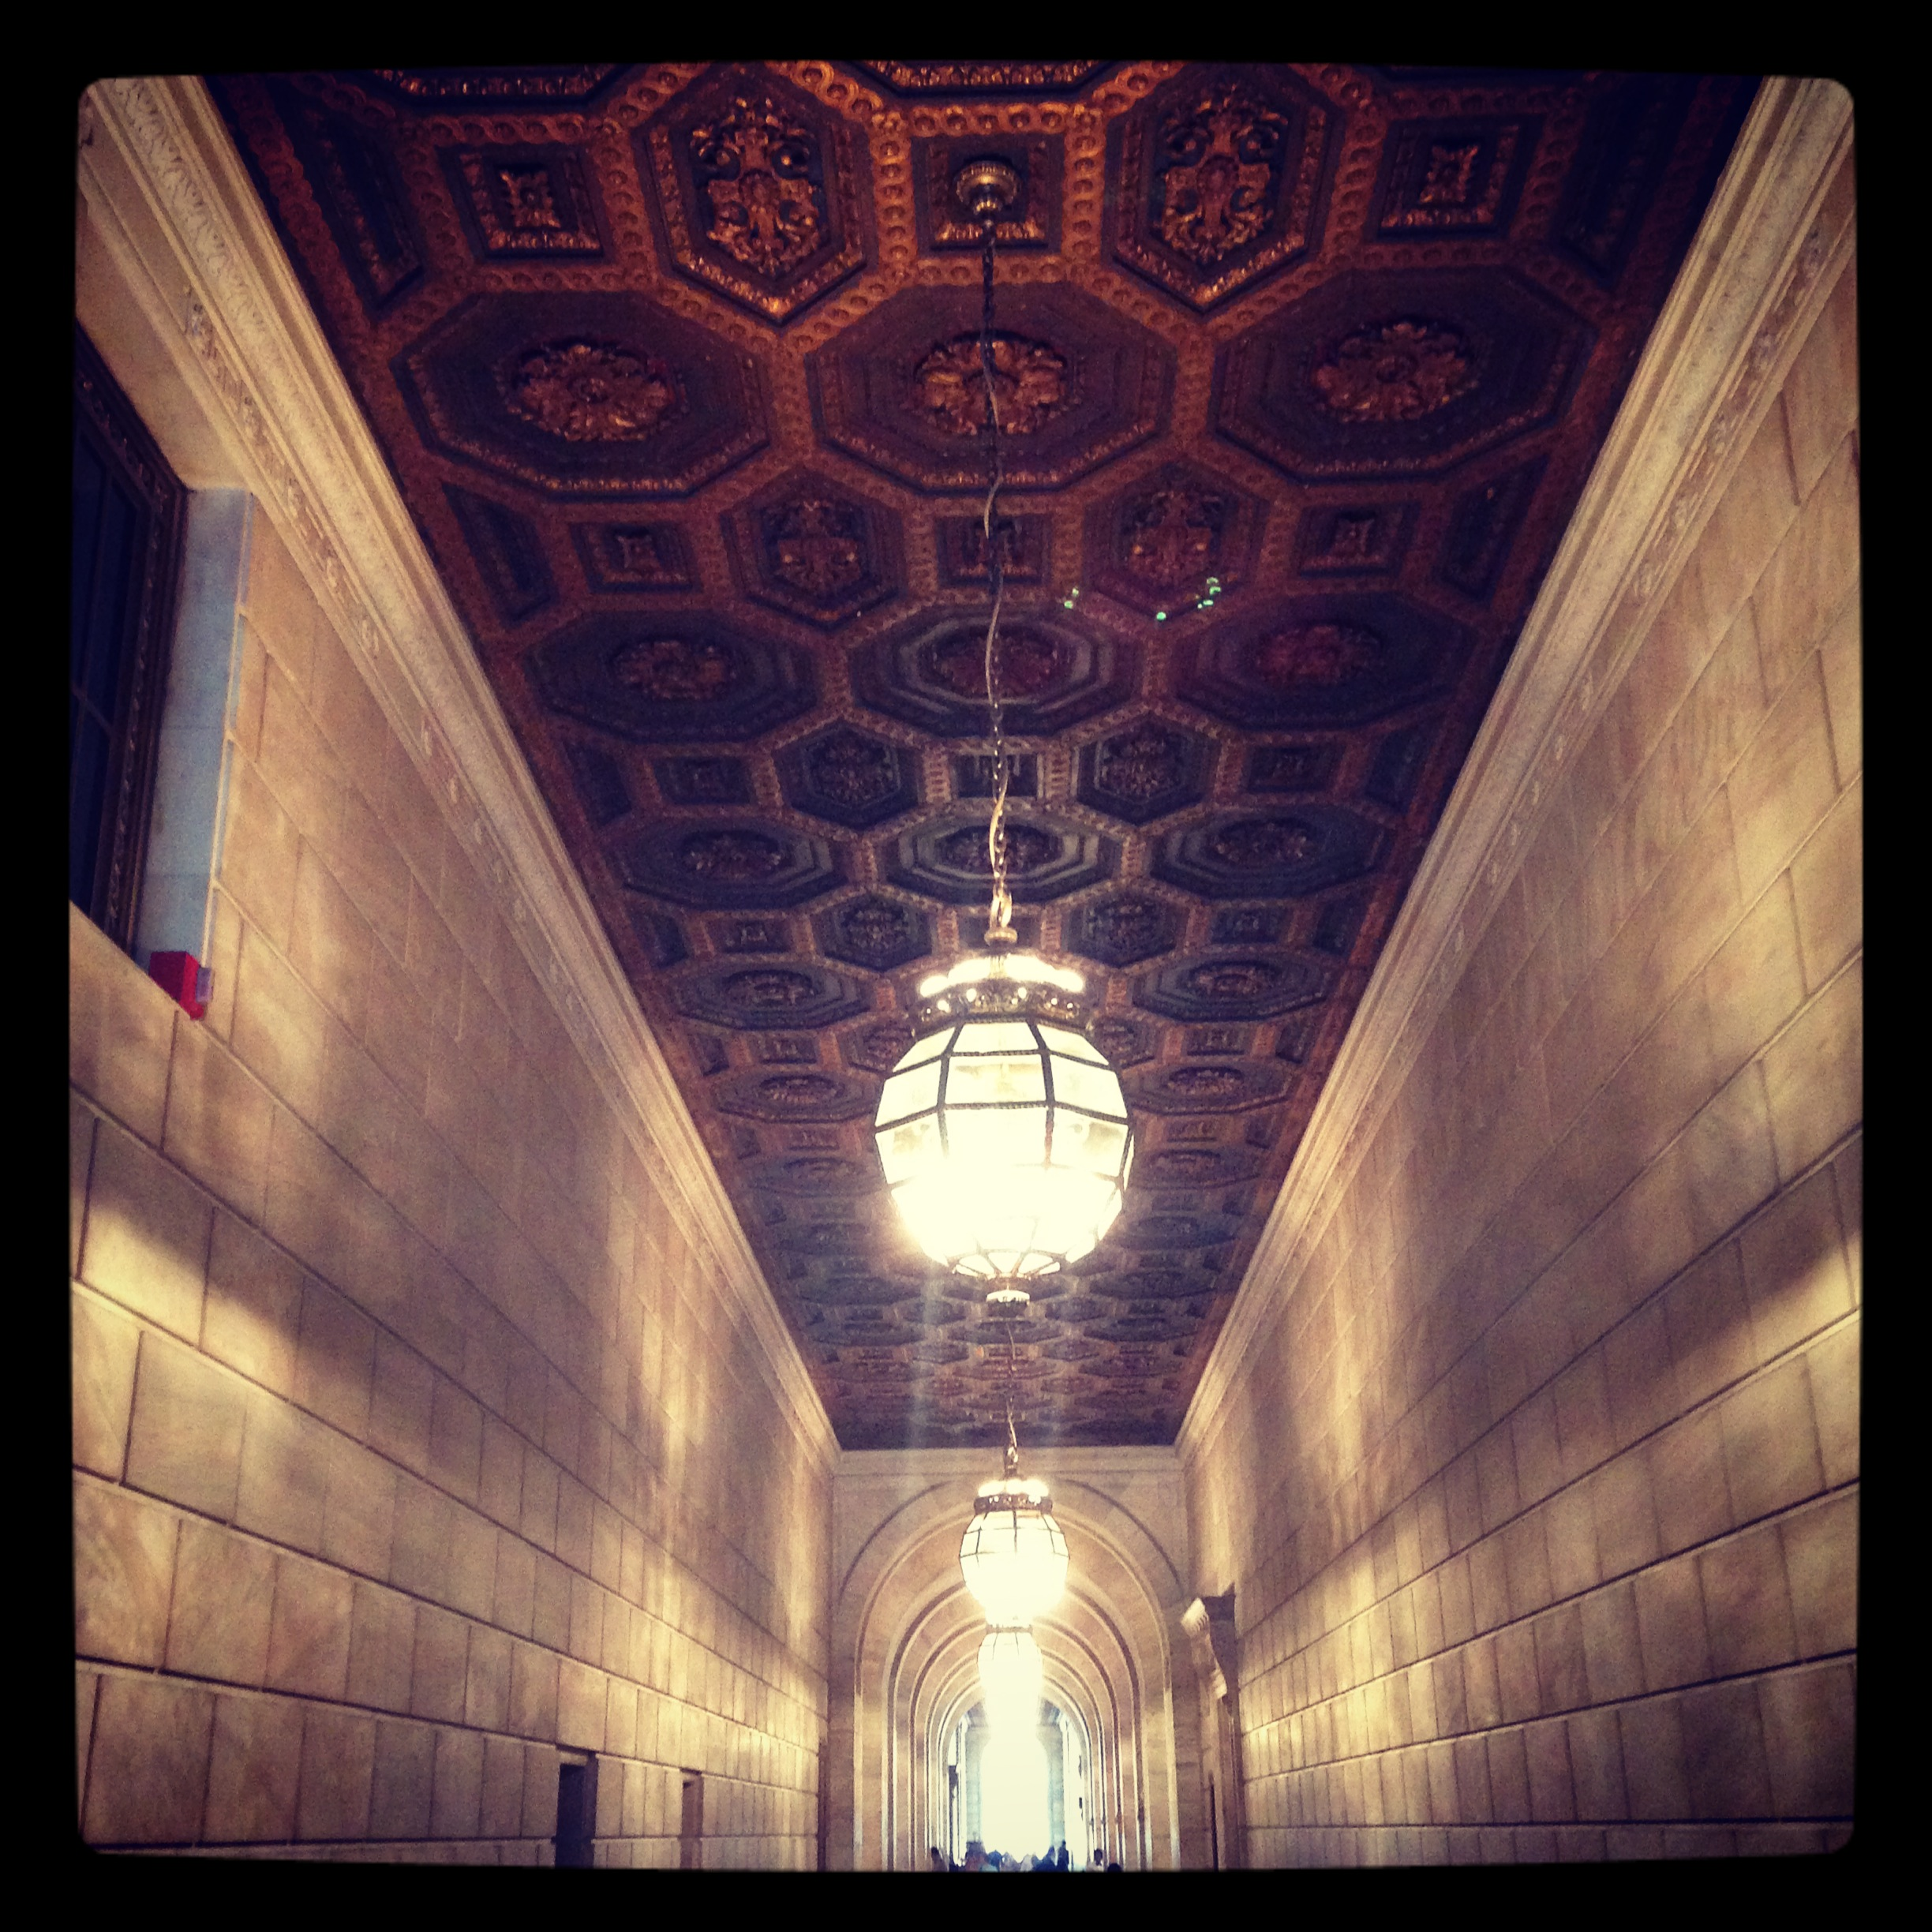 2014 06-13 NYPL Hallway Ceiling - The Oddness of Moving Things